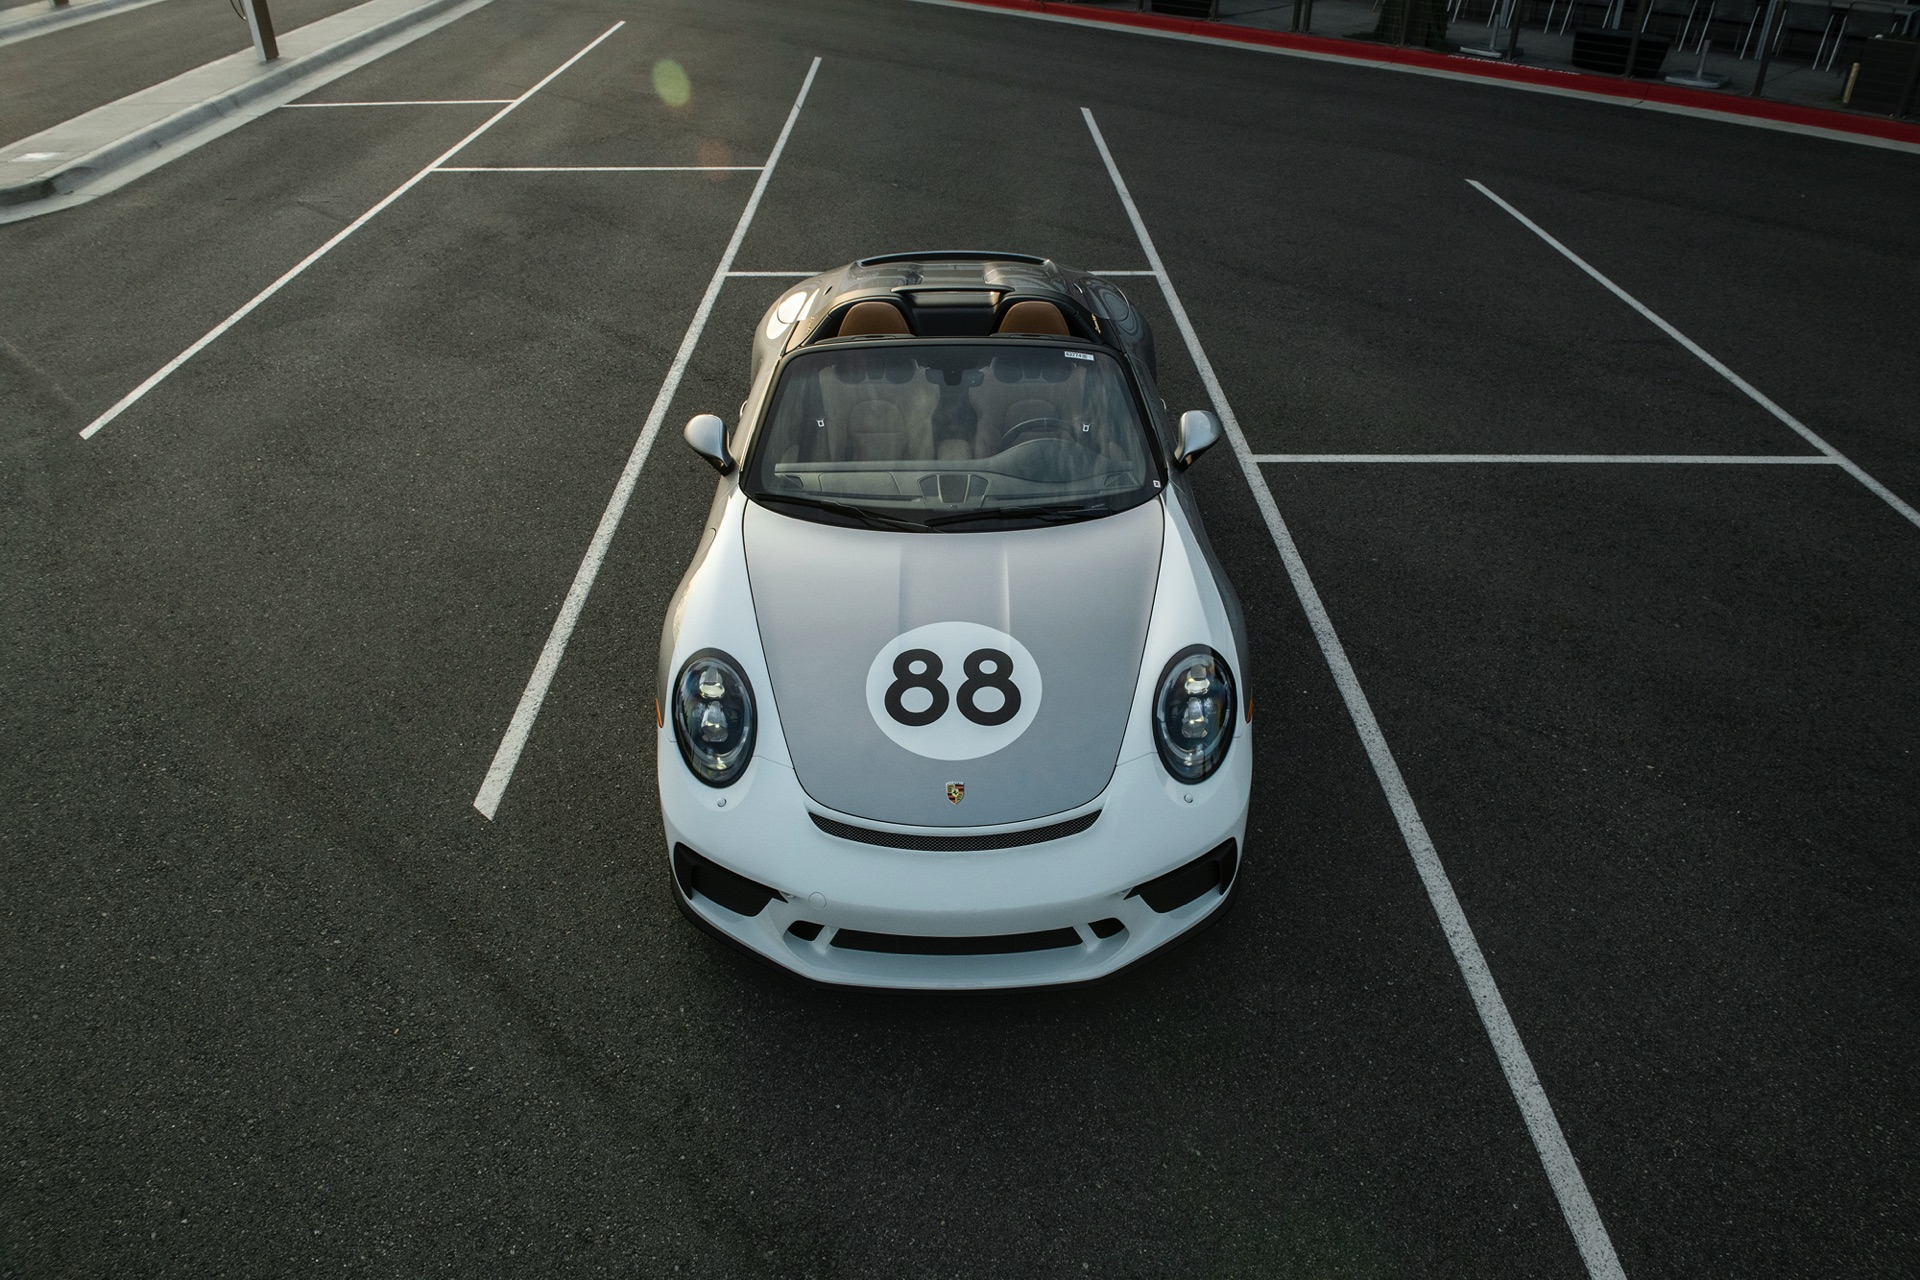 The Last Porsche 991 is Auctioned in Aid of Coronavirus Charity